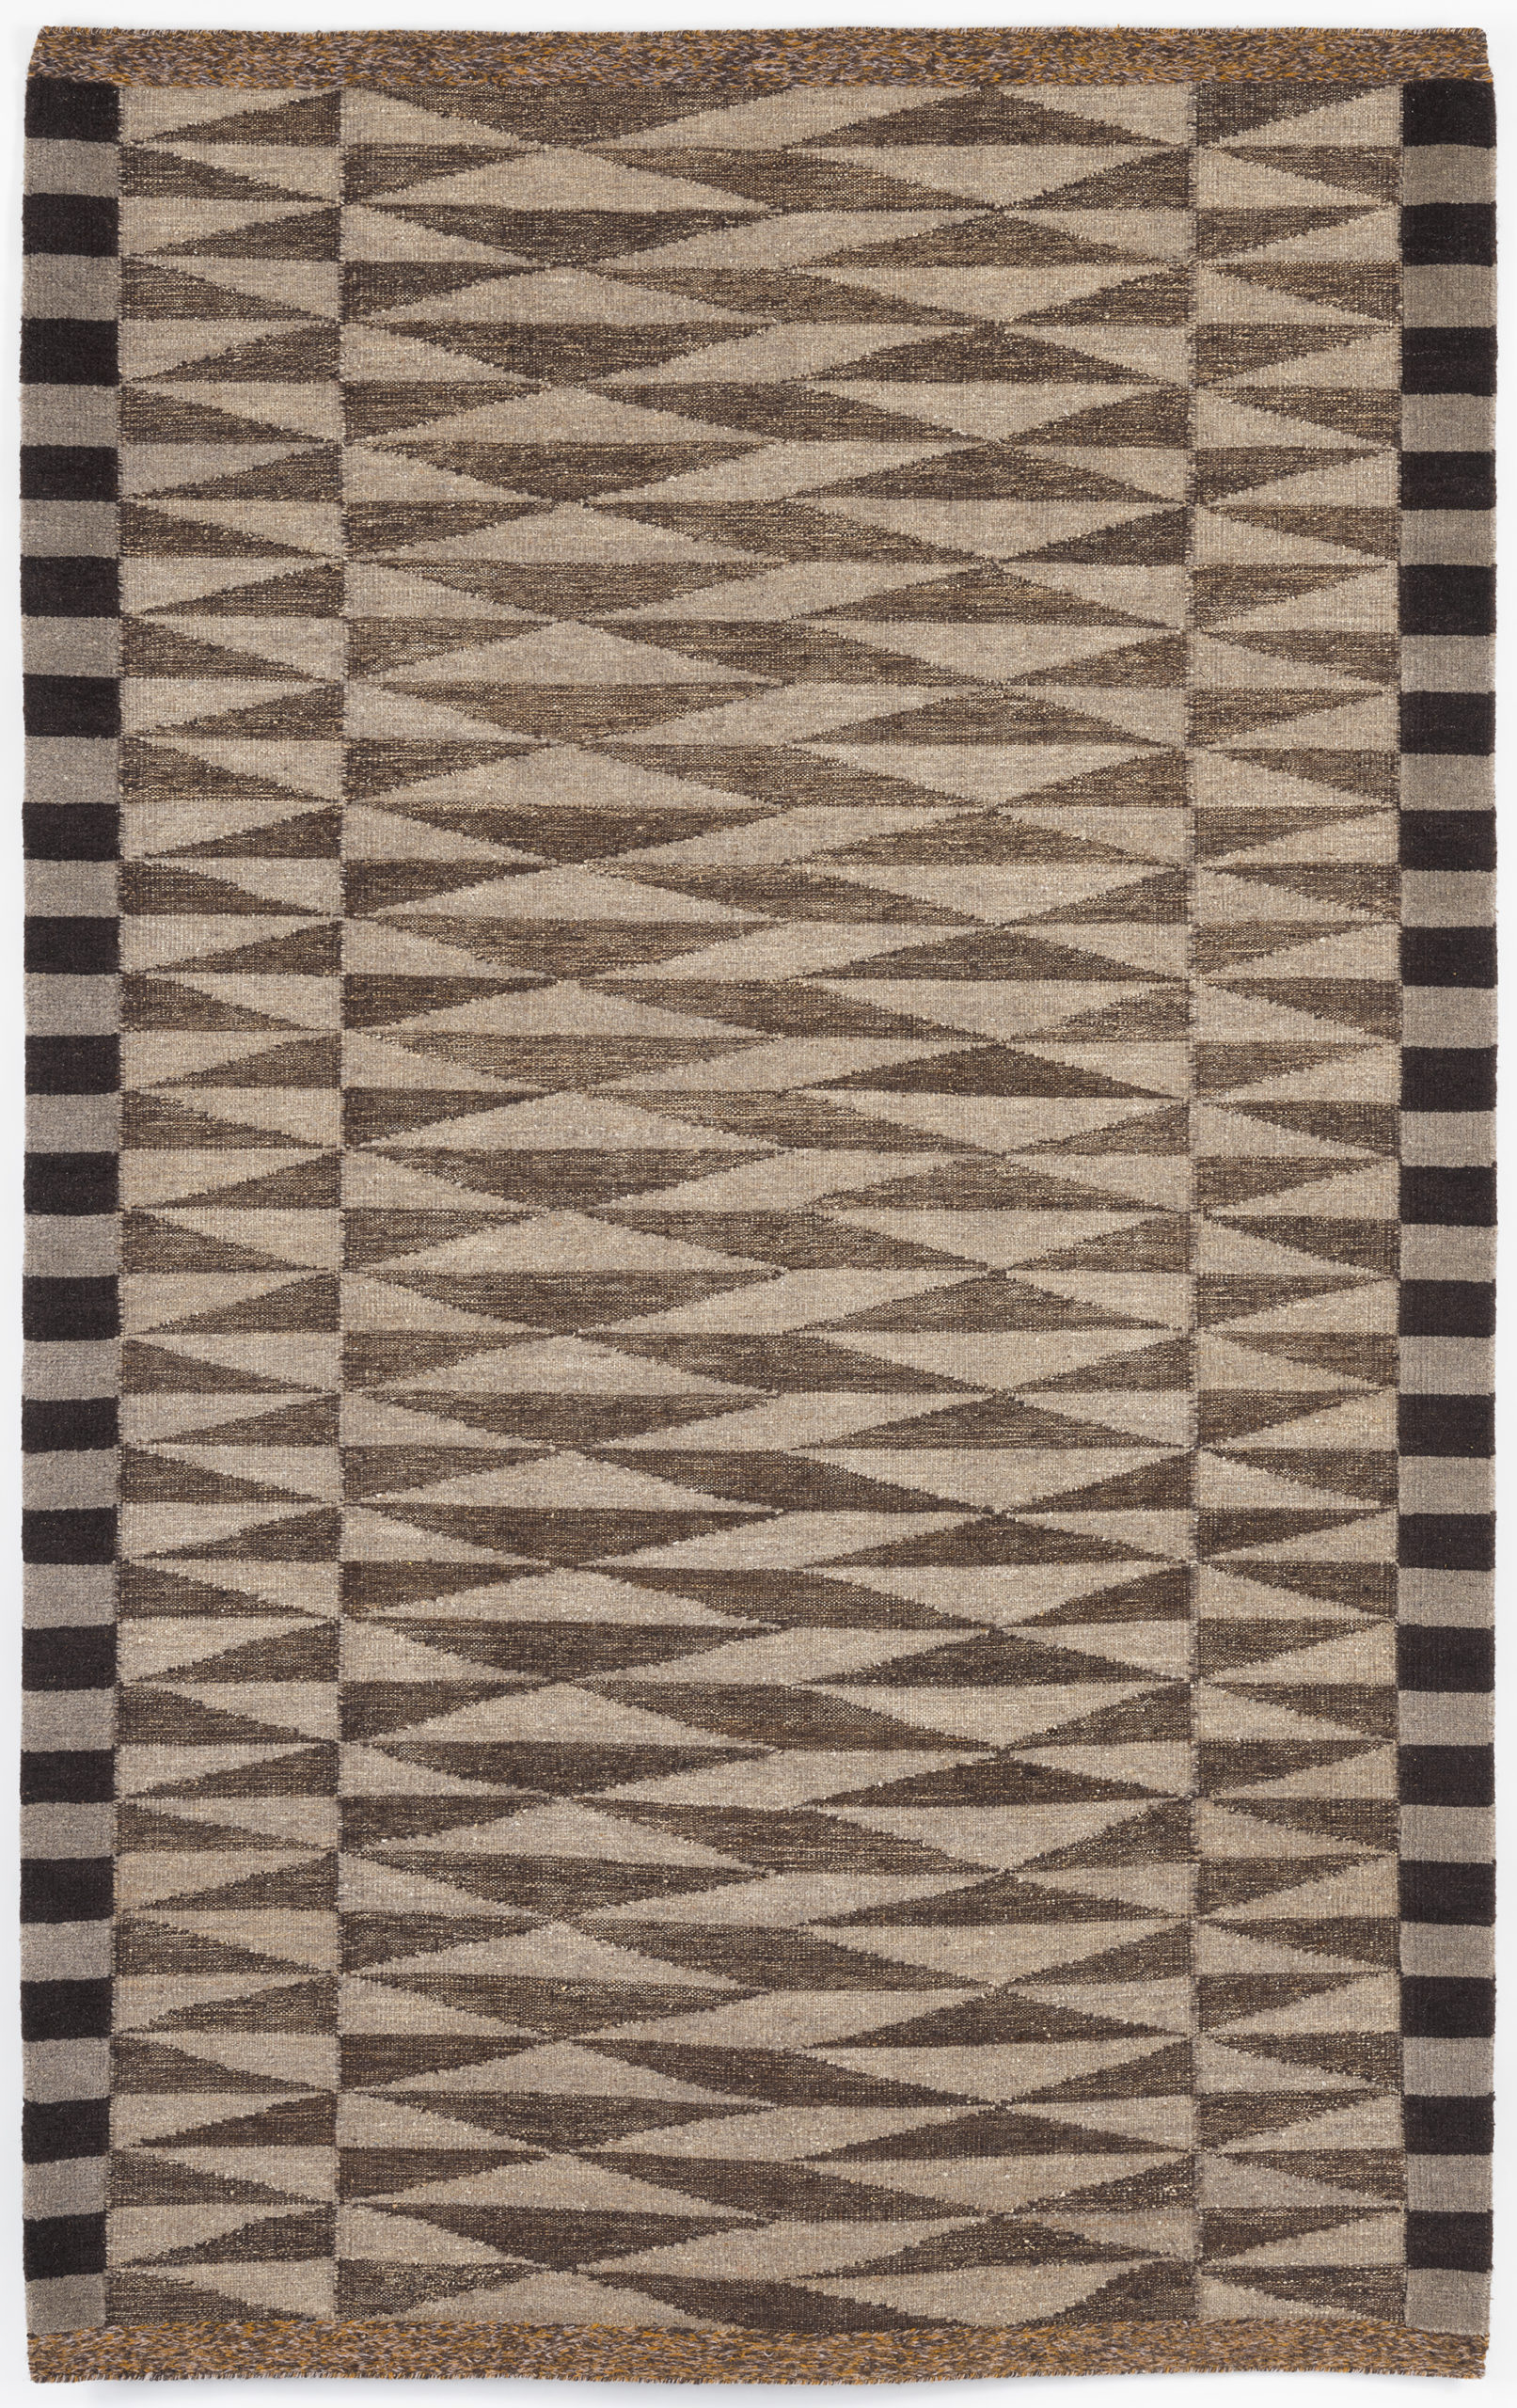 crosby_street_studios_products_CSS_Lineage_Karoo_FullRug-scaled-1